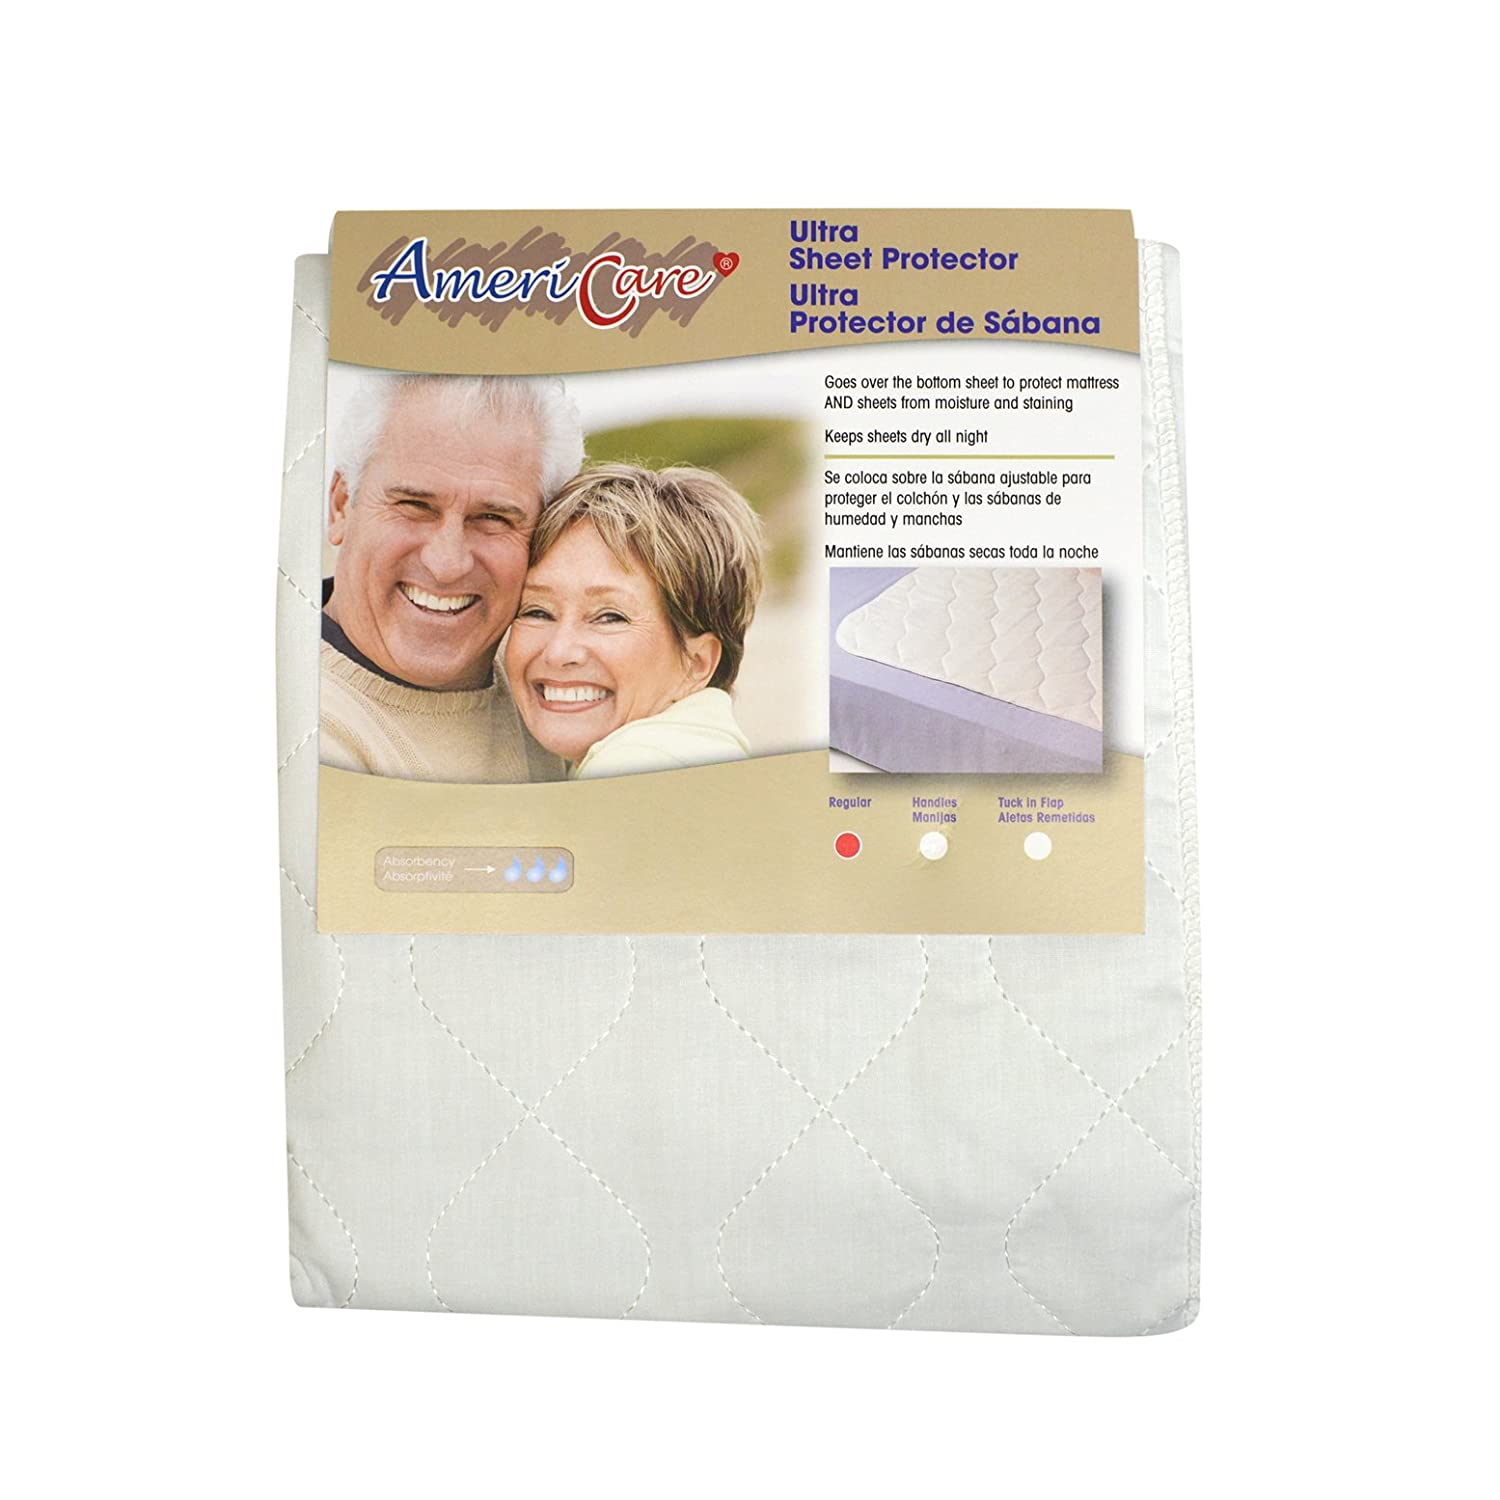 Amazon.com: Americare Extra Sheet Protector, 30